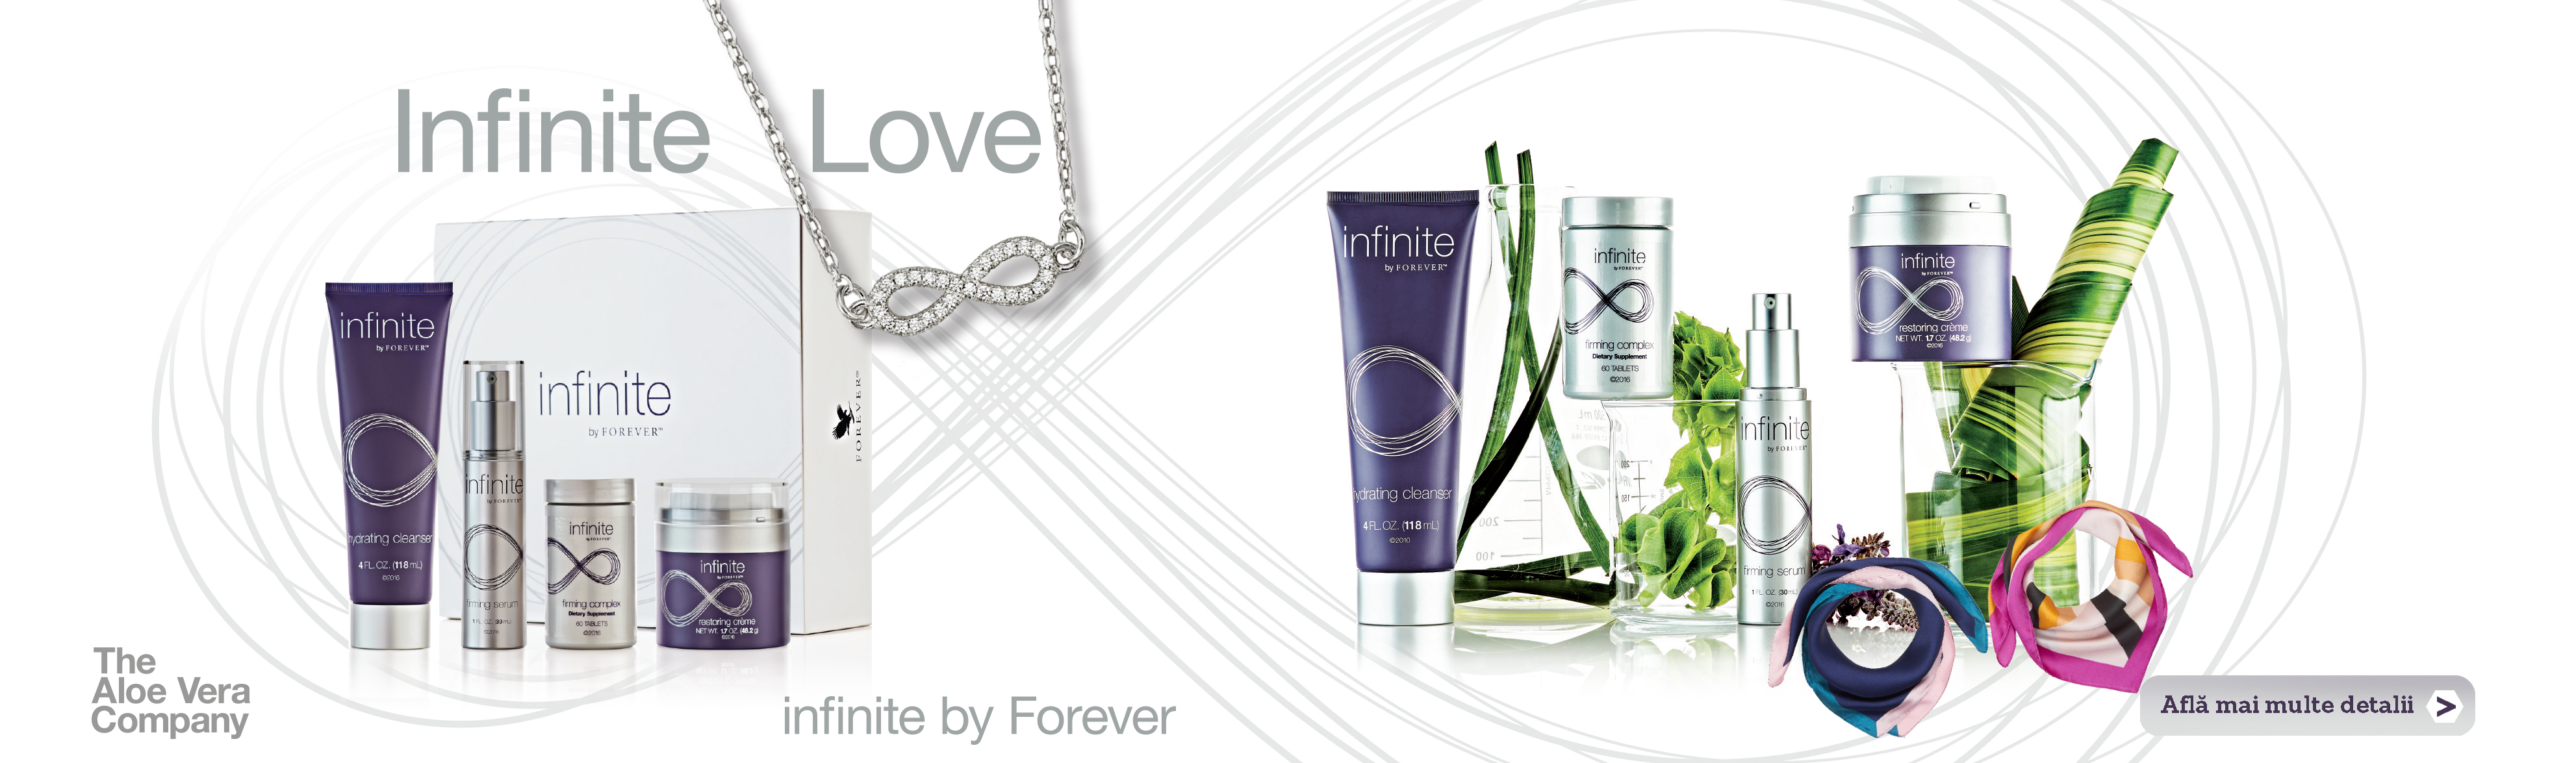 infinite by forever produse antiaging